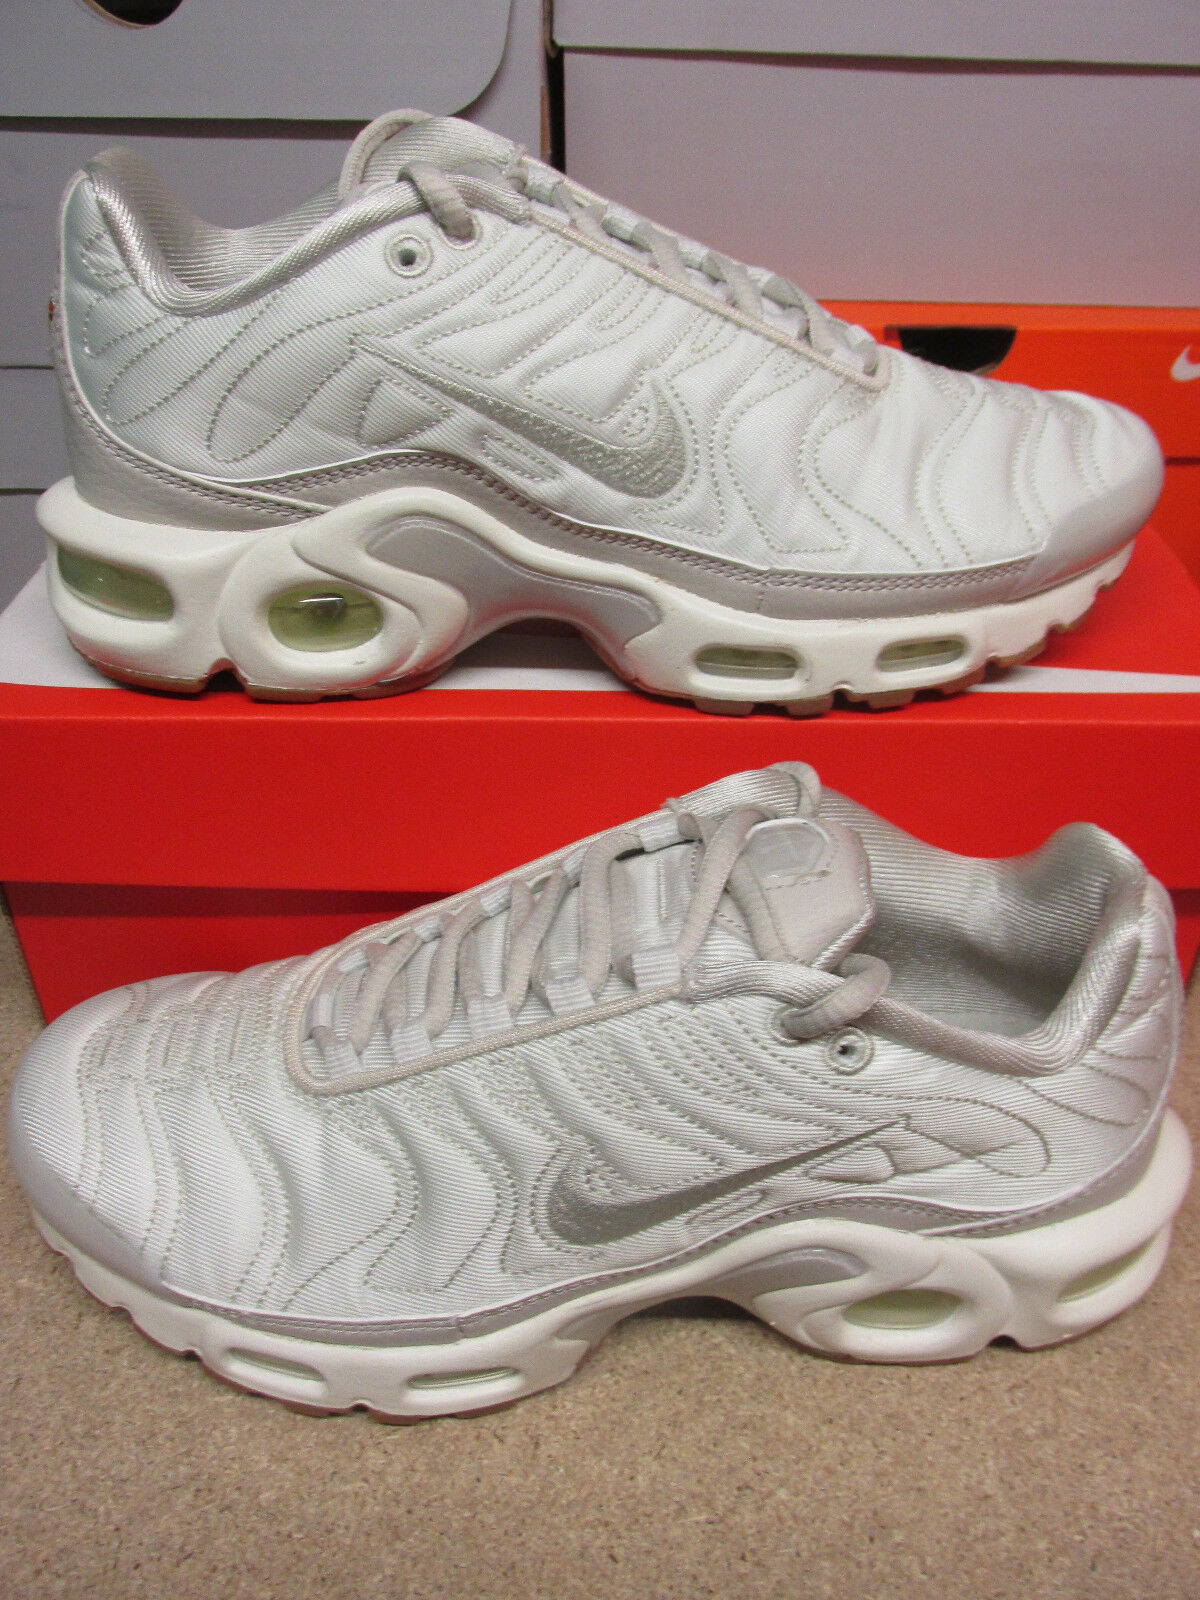 Nike Damenschuhe Air Max Plus PRM Running Trainers 848891 002 Sneakers Schuhes